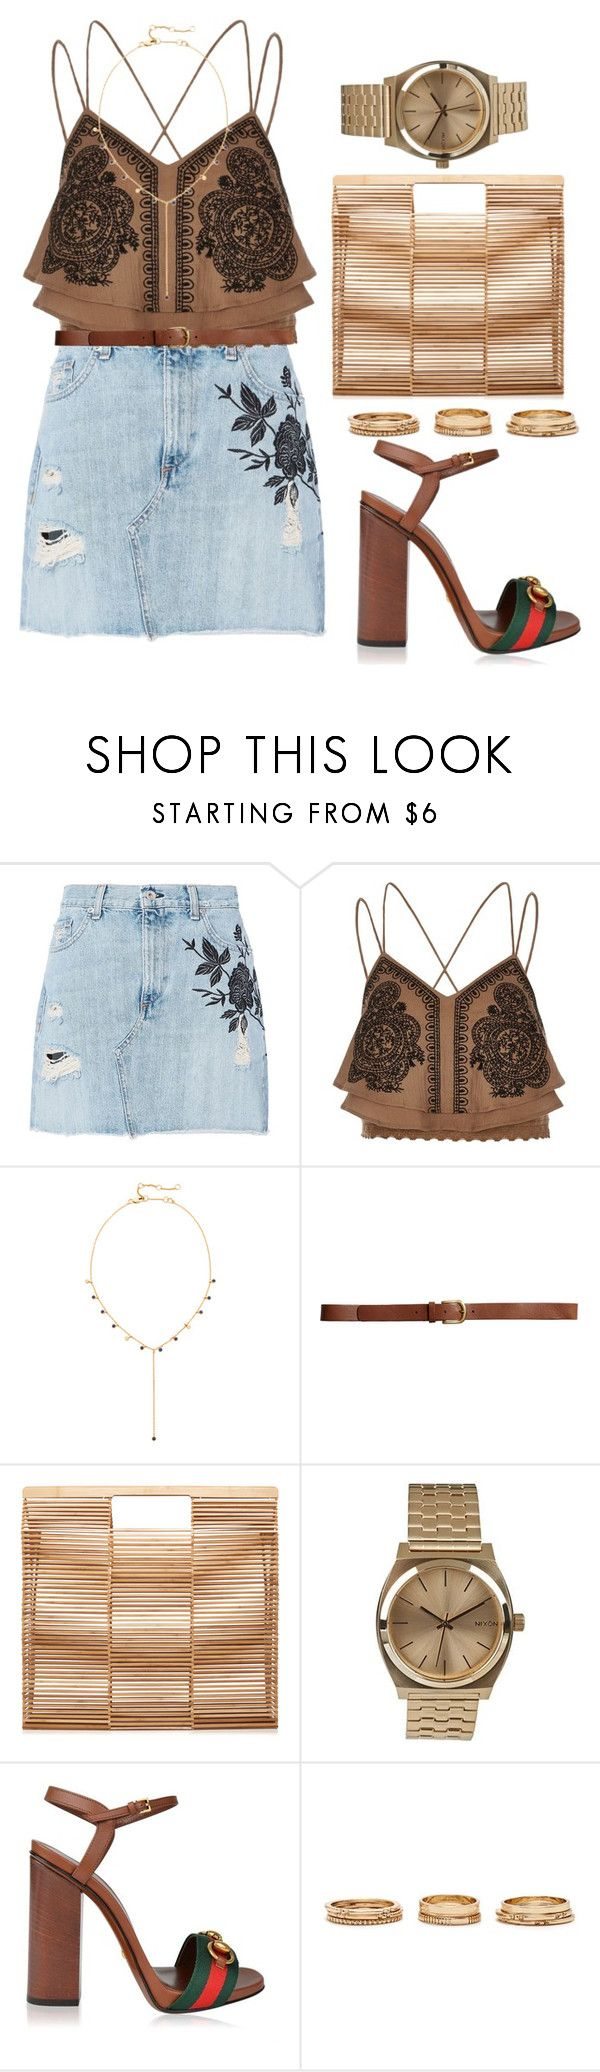 @tropicalvacation by melanie-pacheco on Polyvore featuring moda, River Island, rag & bone, Gucci, Cult Gaia, Nixon, Madewell, Forever 21, H&M and urbanstyle